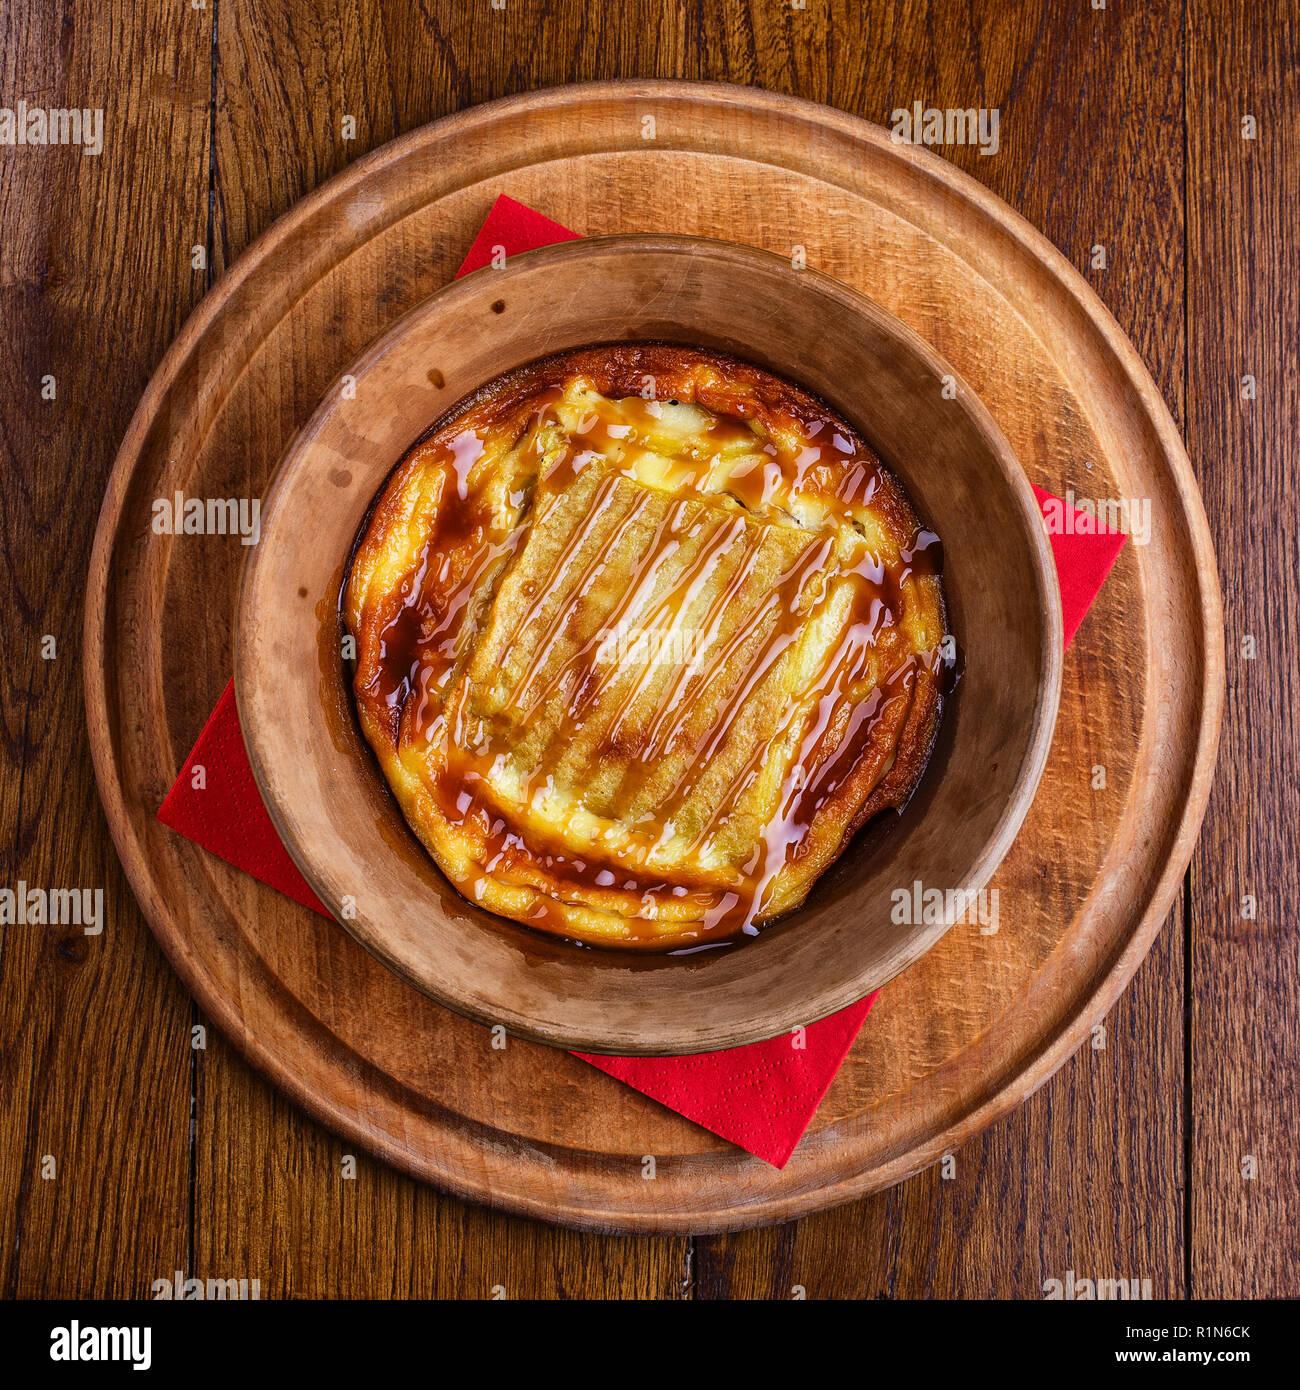 Casserole in a pot. Casserole with cabbage, macaroni, eggs - Stock Image